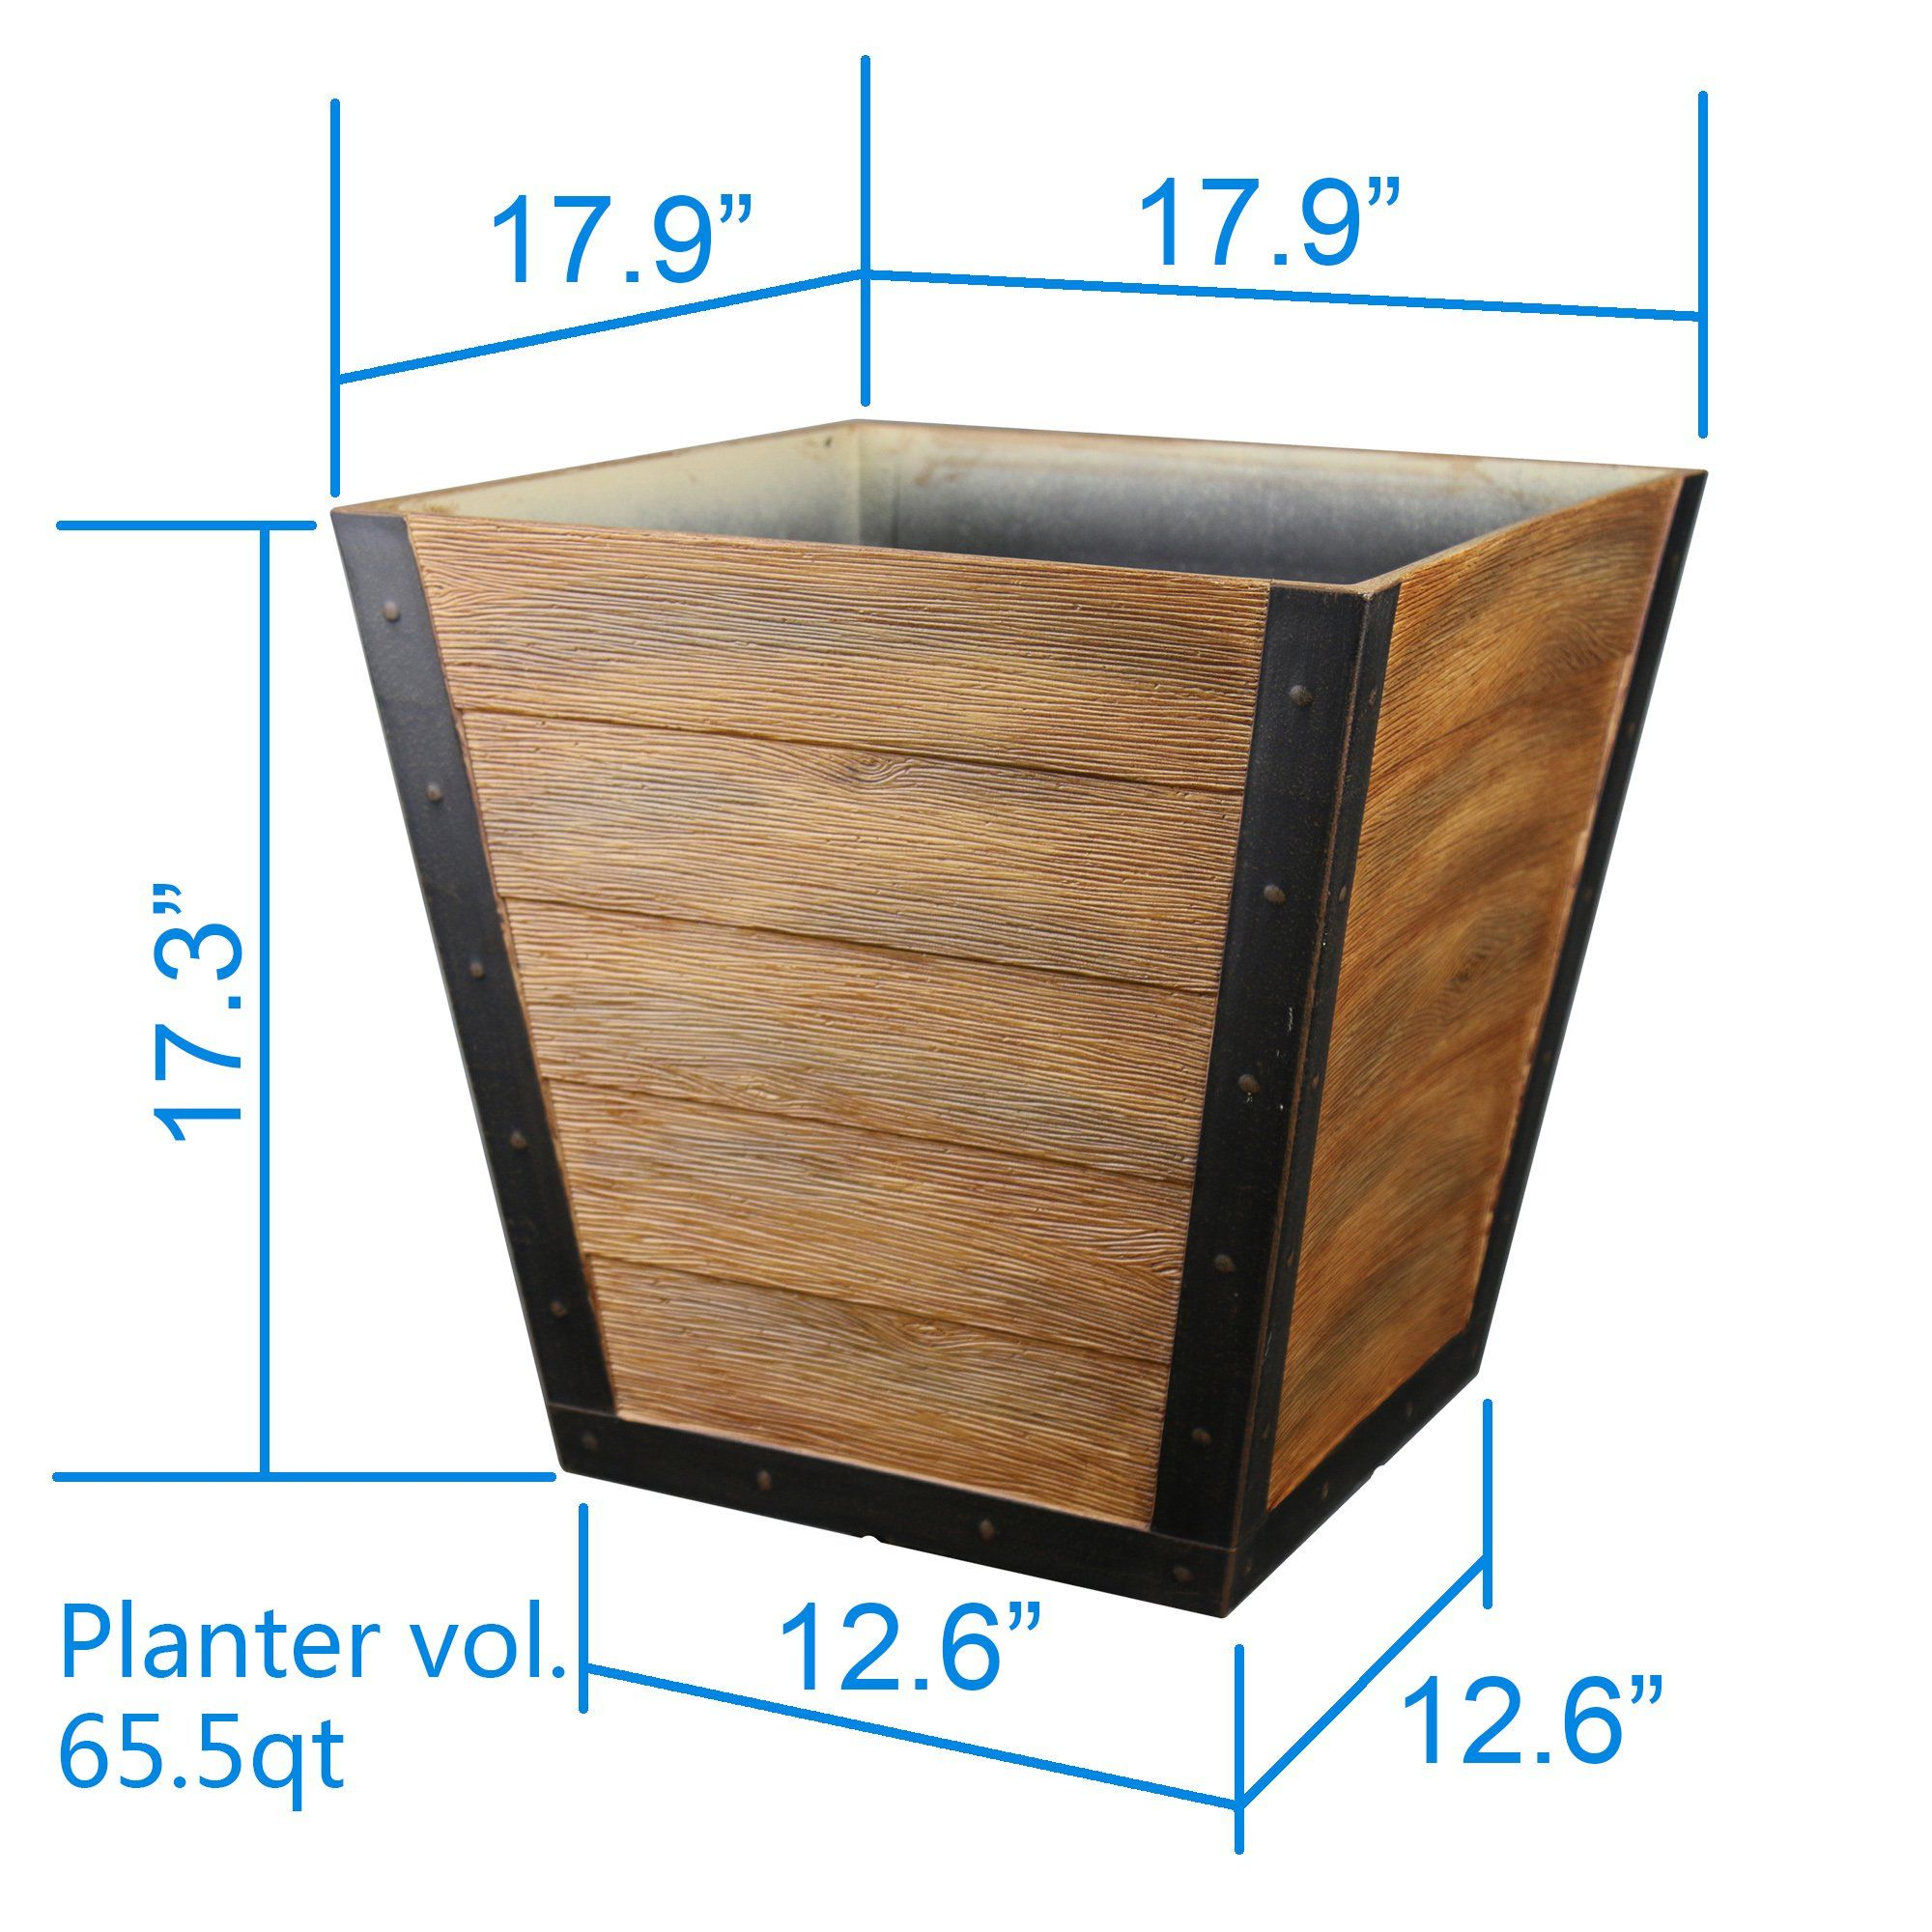 b299f2f9ffb93bce1ed7fde50d3949c6 - Better Homes And Gardens 18 Planter Brown